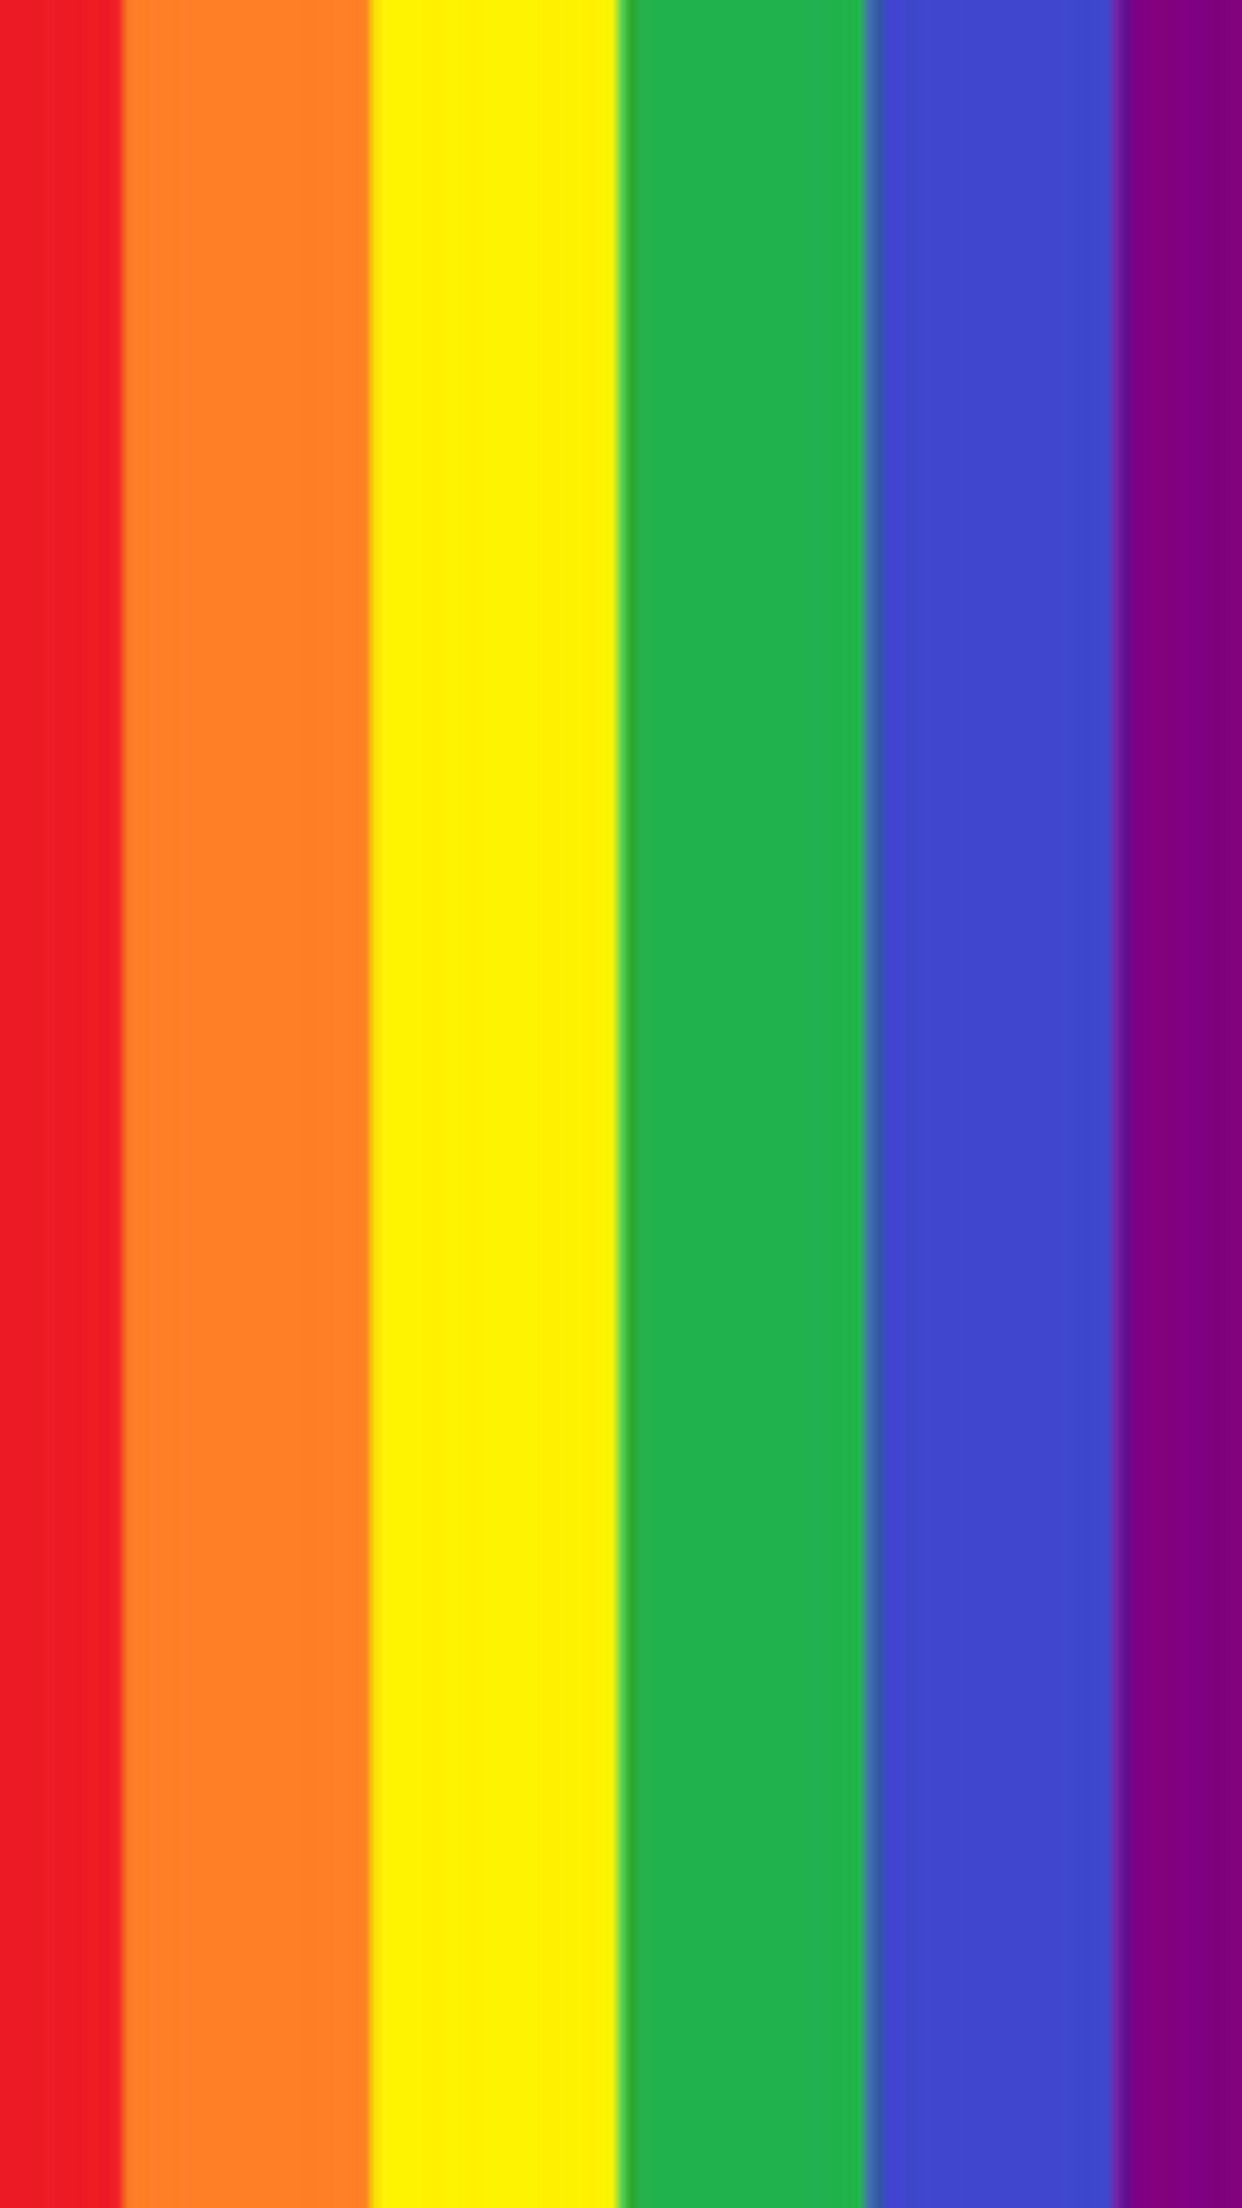 Rainbow Pride Iphone Wallpapers Iphone Wallpaper Iphone Background Images Wallpaper